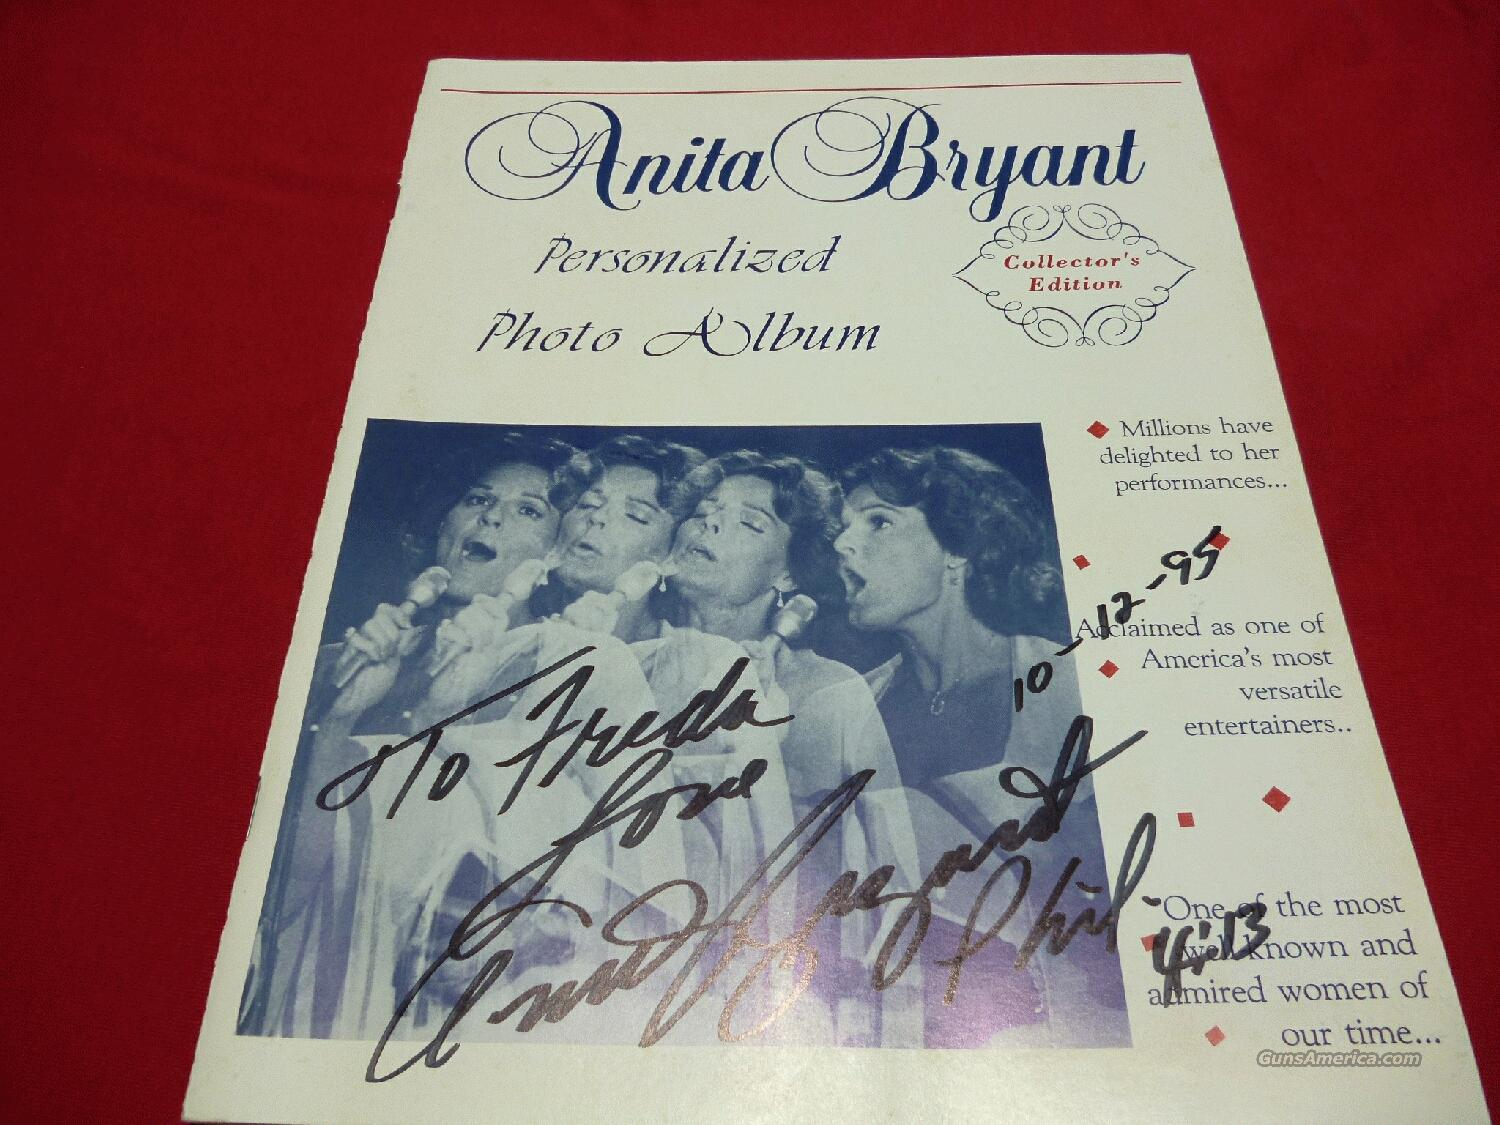 ANITA BRYANT AUTOGRAPHED & DATED PHOTO ALBUM - FREE SHIPPING!  Non-Guns > Hobbies and Collectibles